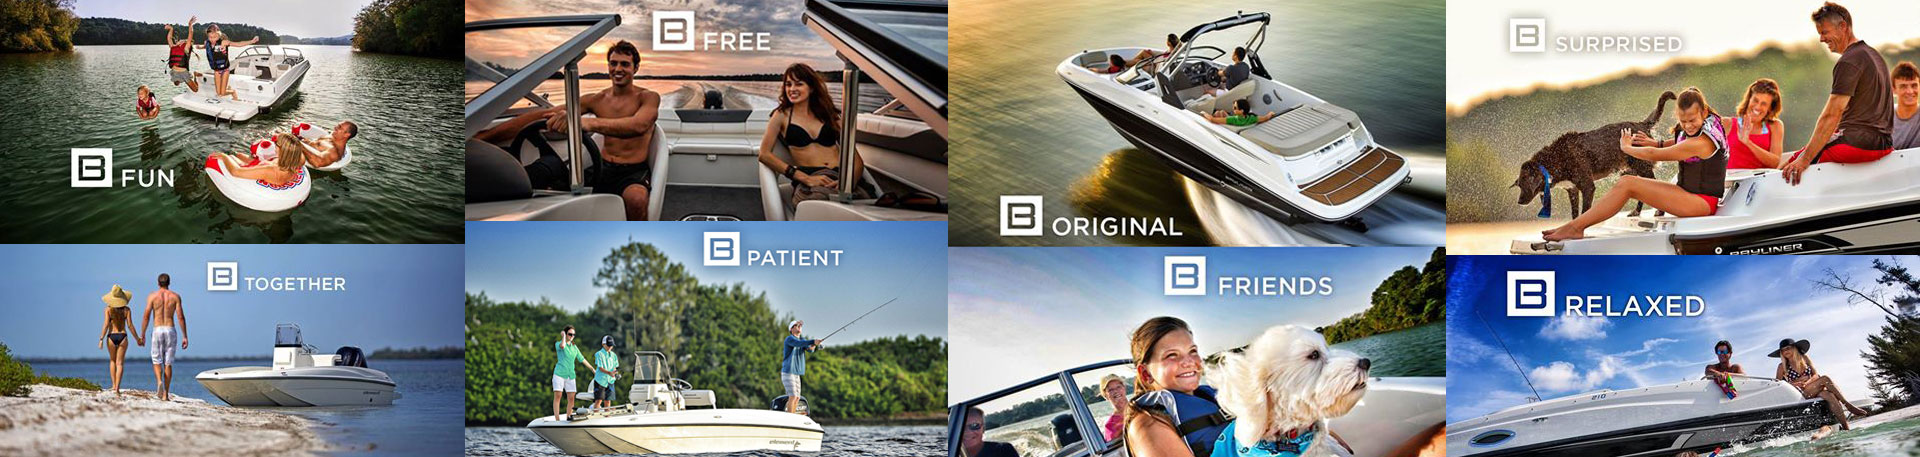 Bayliner | Bayliner boat Warranty Taupo, New Zealand